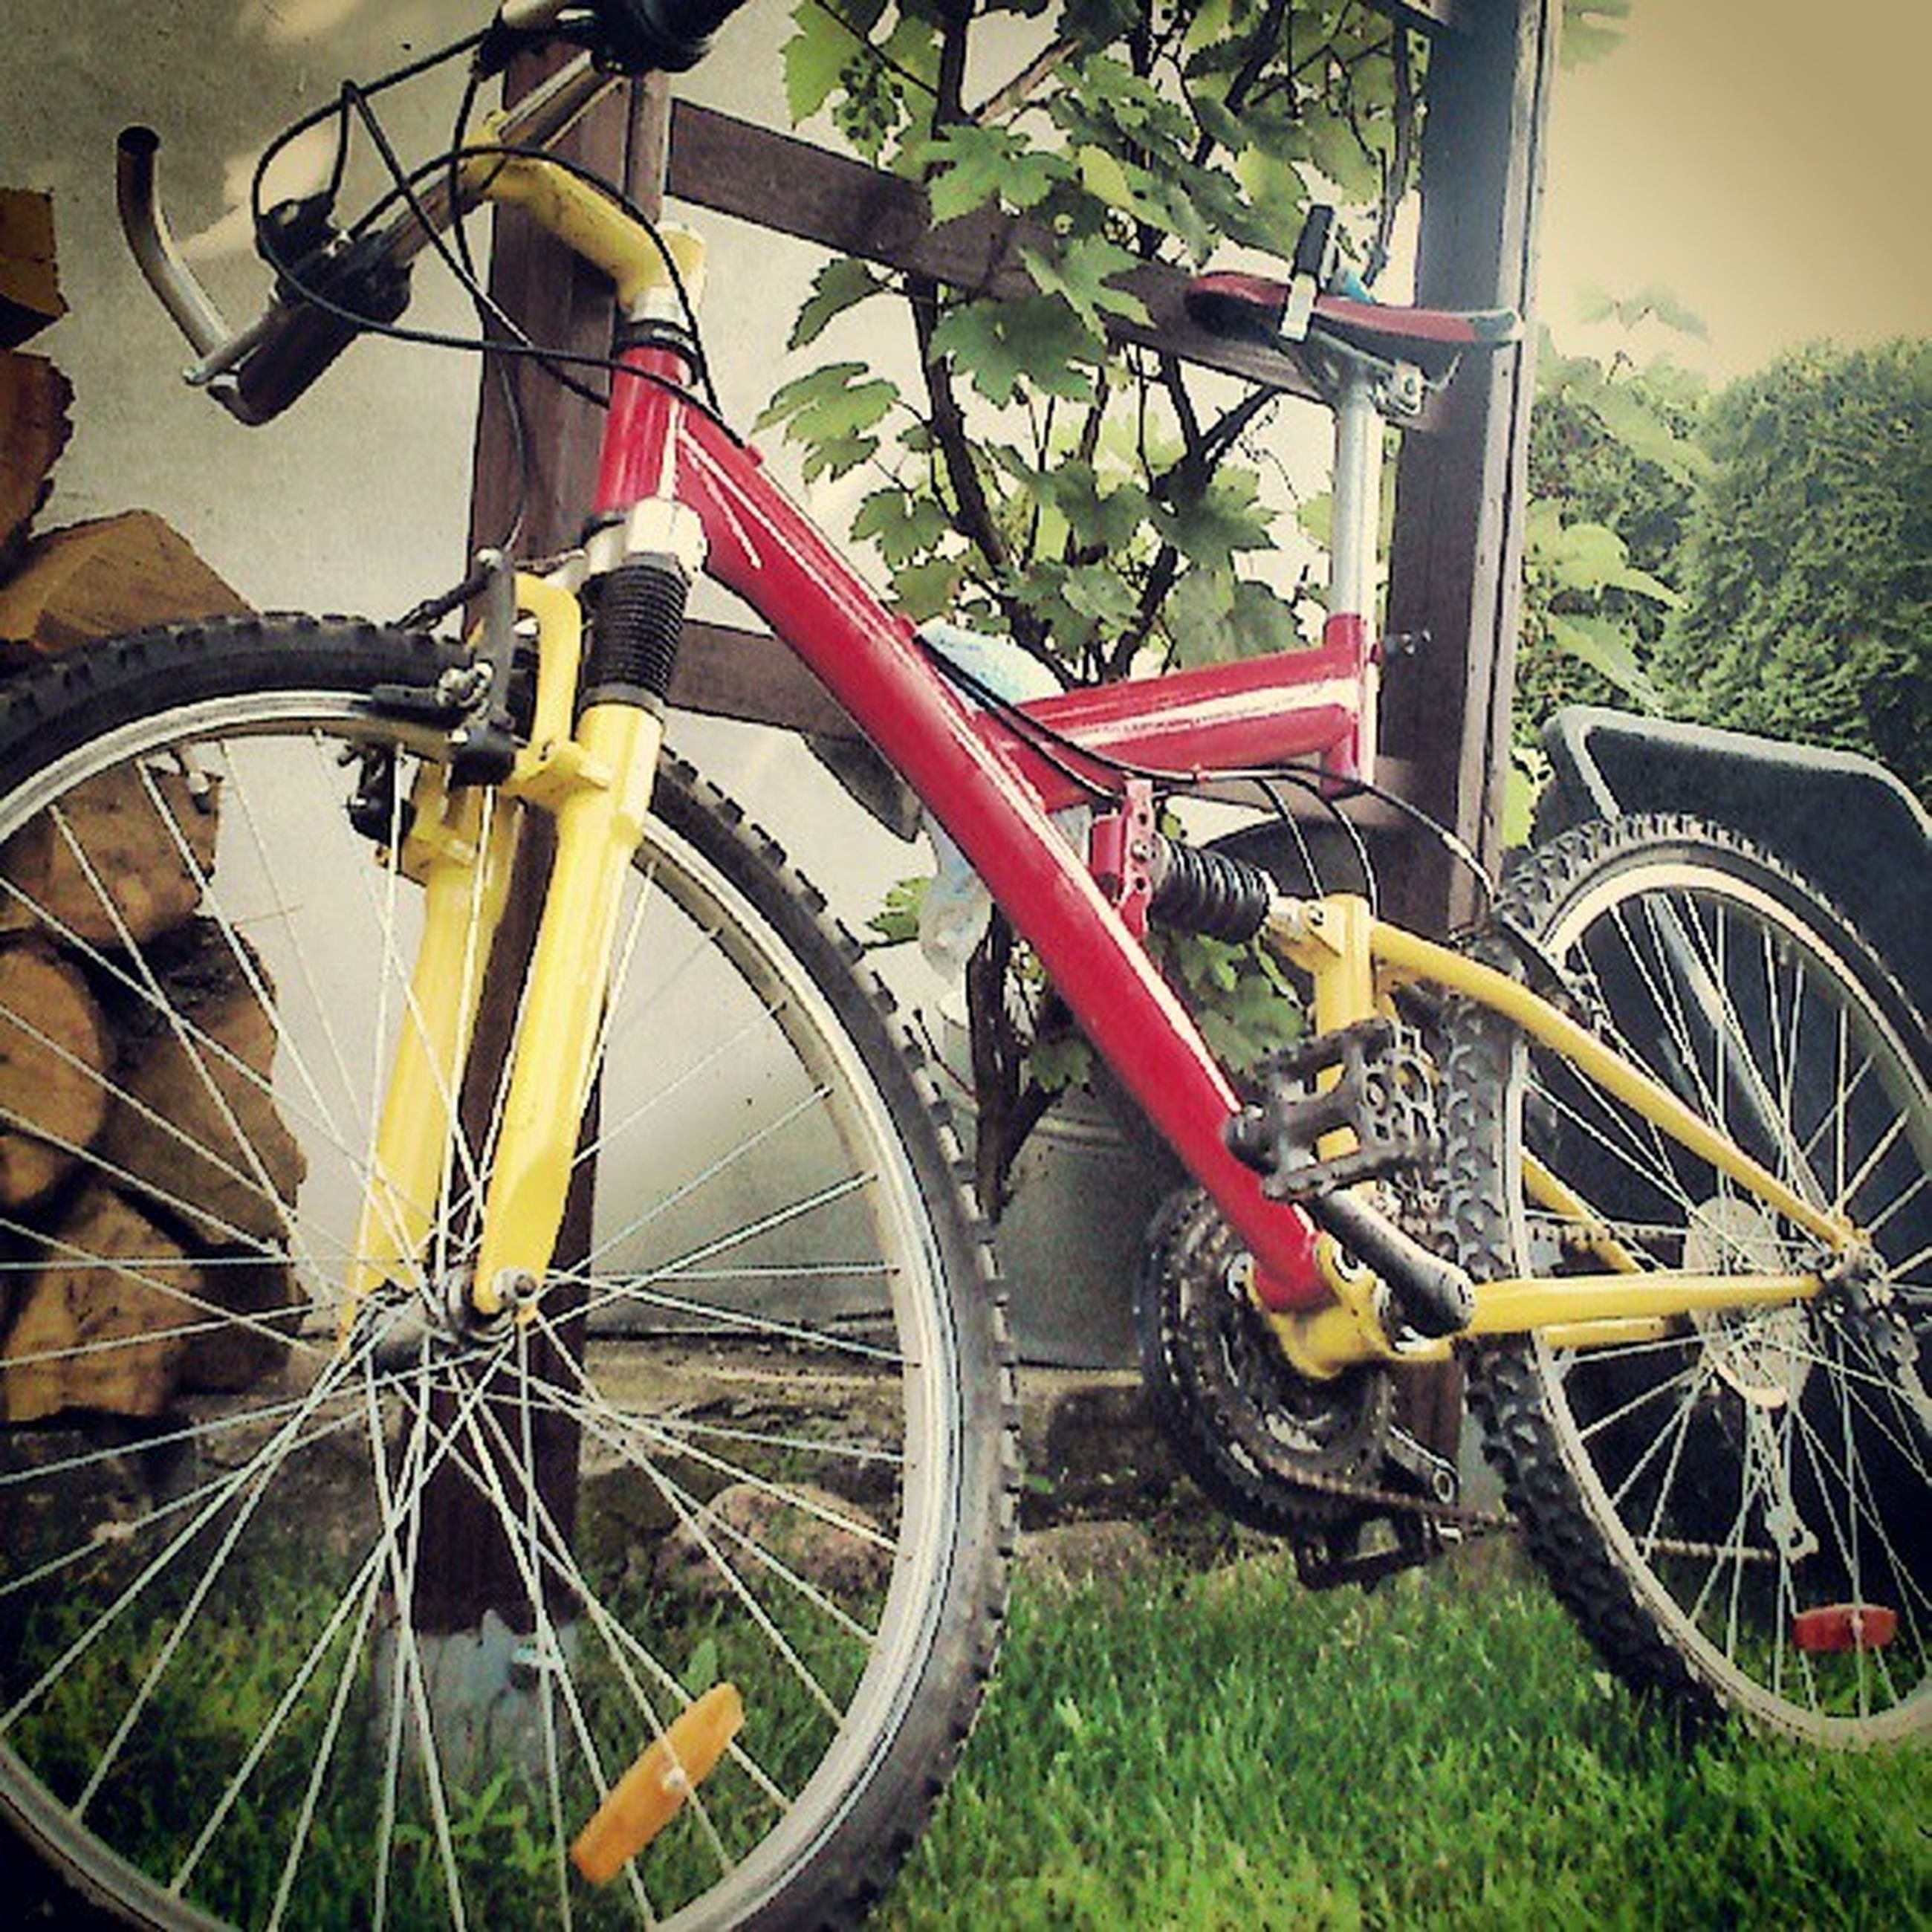 bicycle, transportation, mode of transport, land vehicle, wheel, stationary, parking, parked, travel, leaning, day, part of, outdoors, built structure, red, motorcycle, architecture, cycle, no people, car